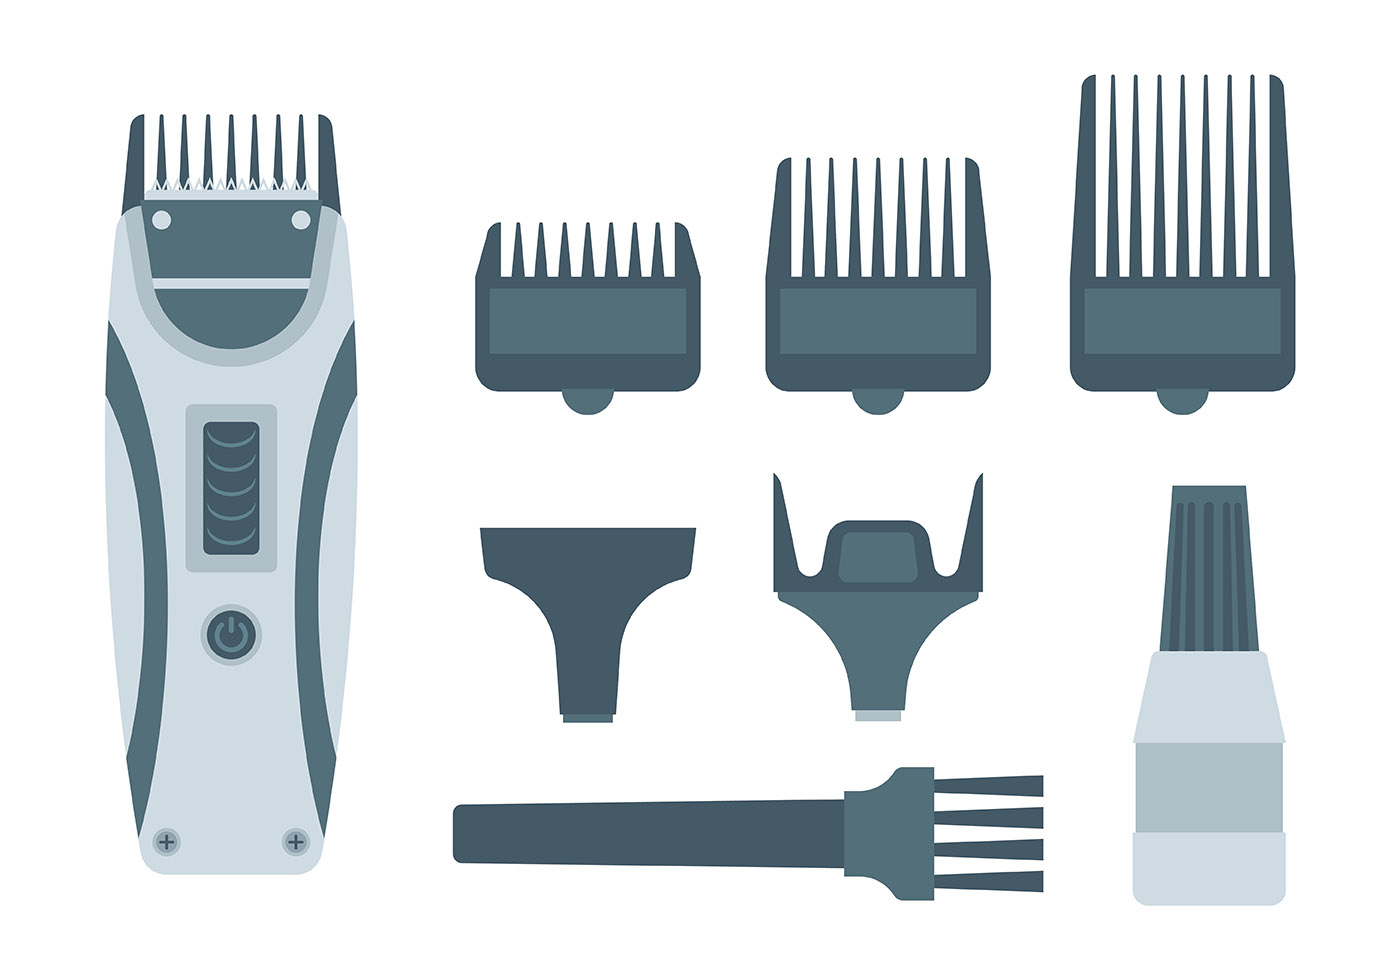 barber clippers svg - HD 1400×980